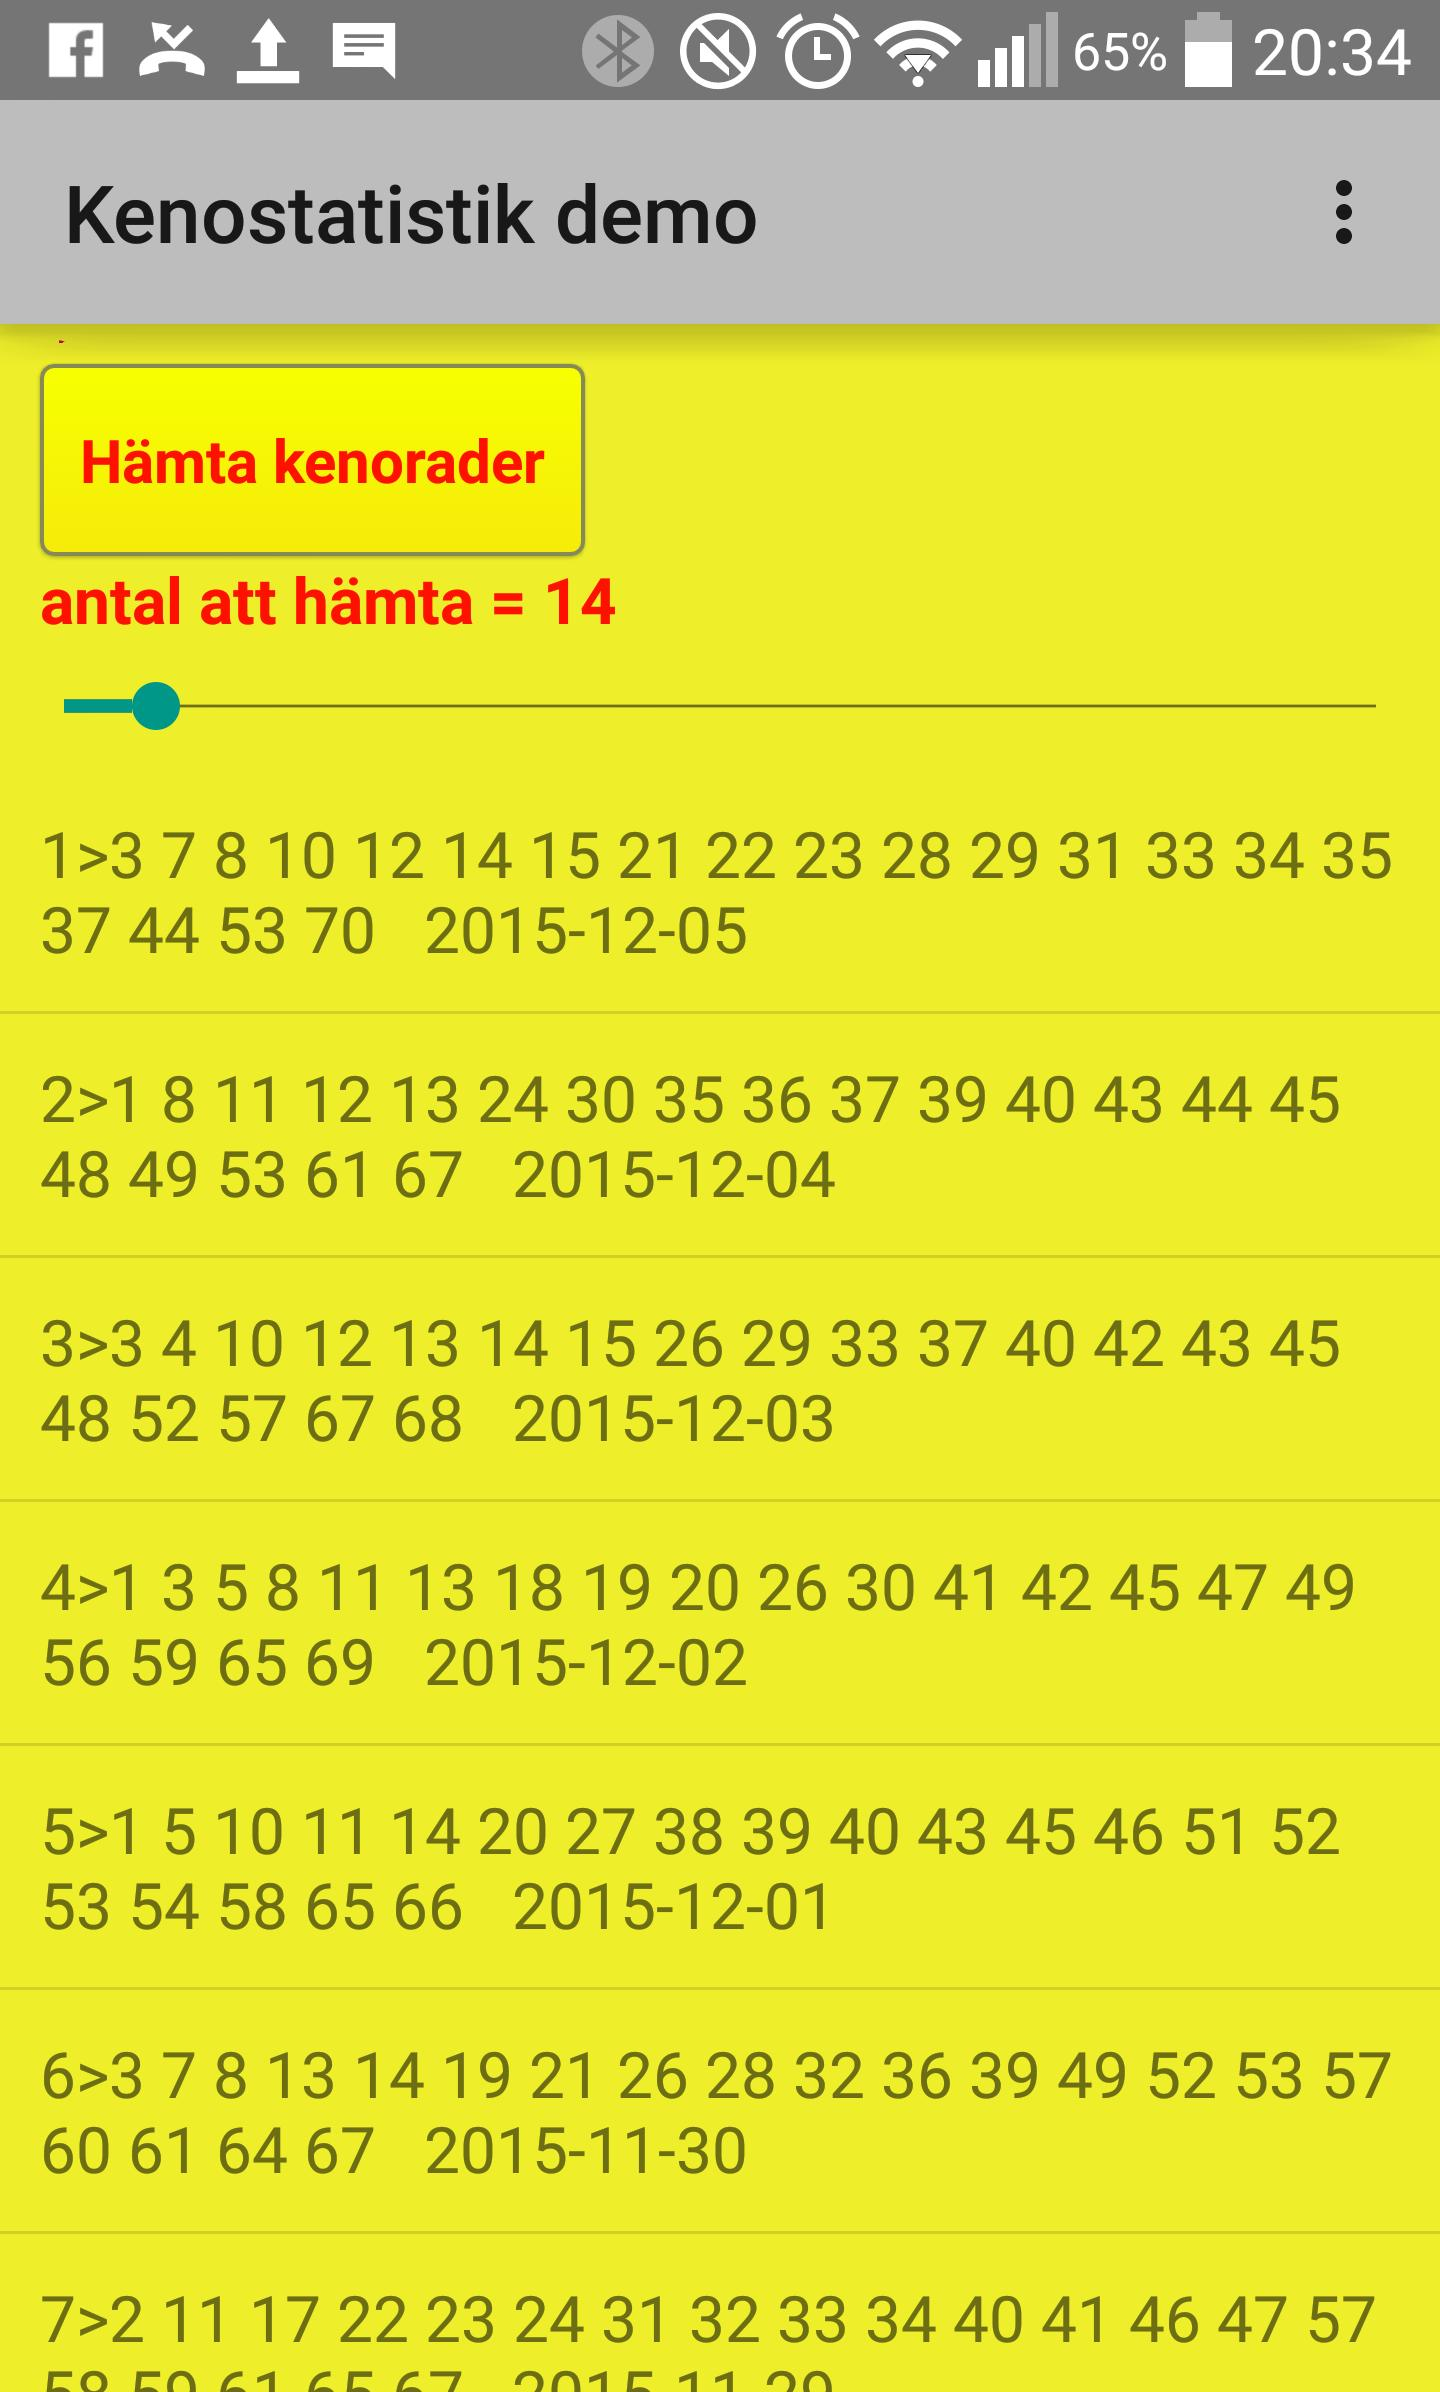 Keno Statistik Download